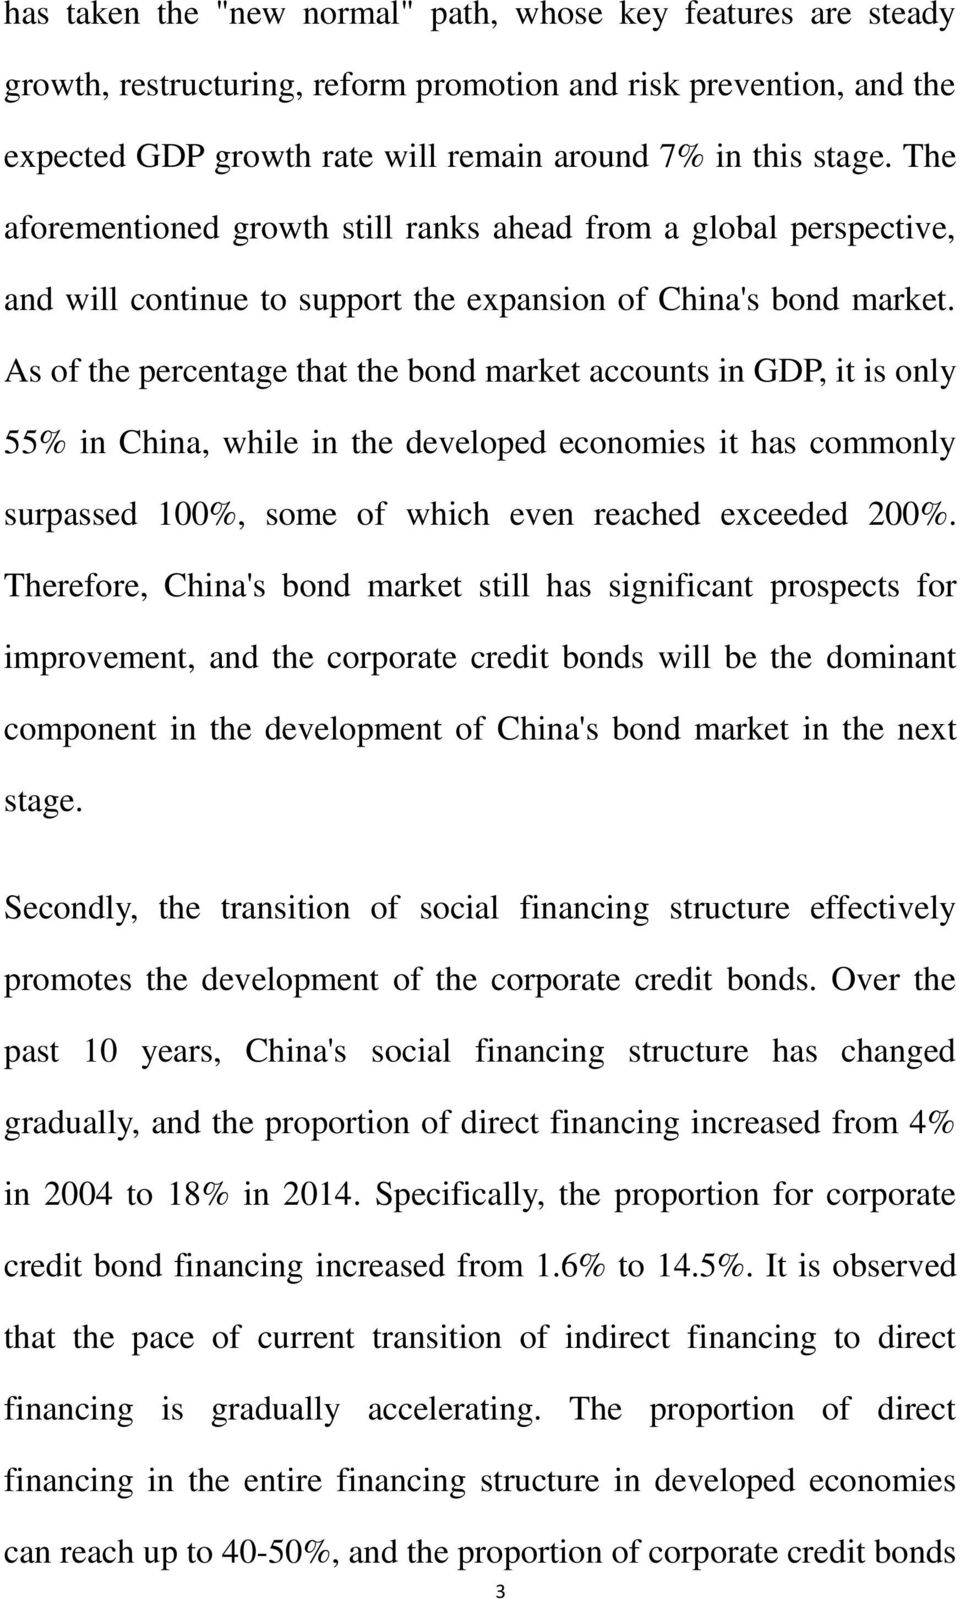 As of the percentage that the bond market accounts in GDP, it is only 55% in China, while in the developed economies it has commonly surpassed 100%, some of which even reached exceeded 200%.